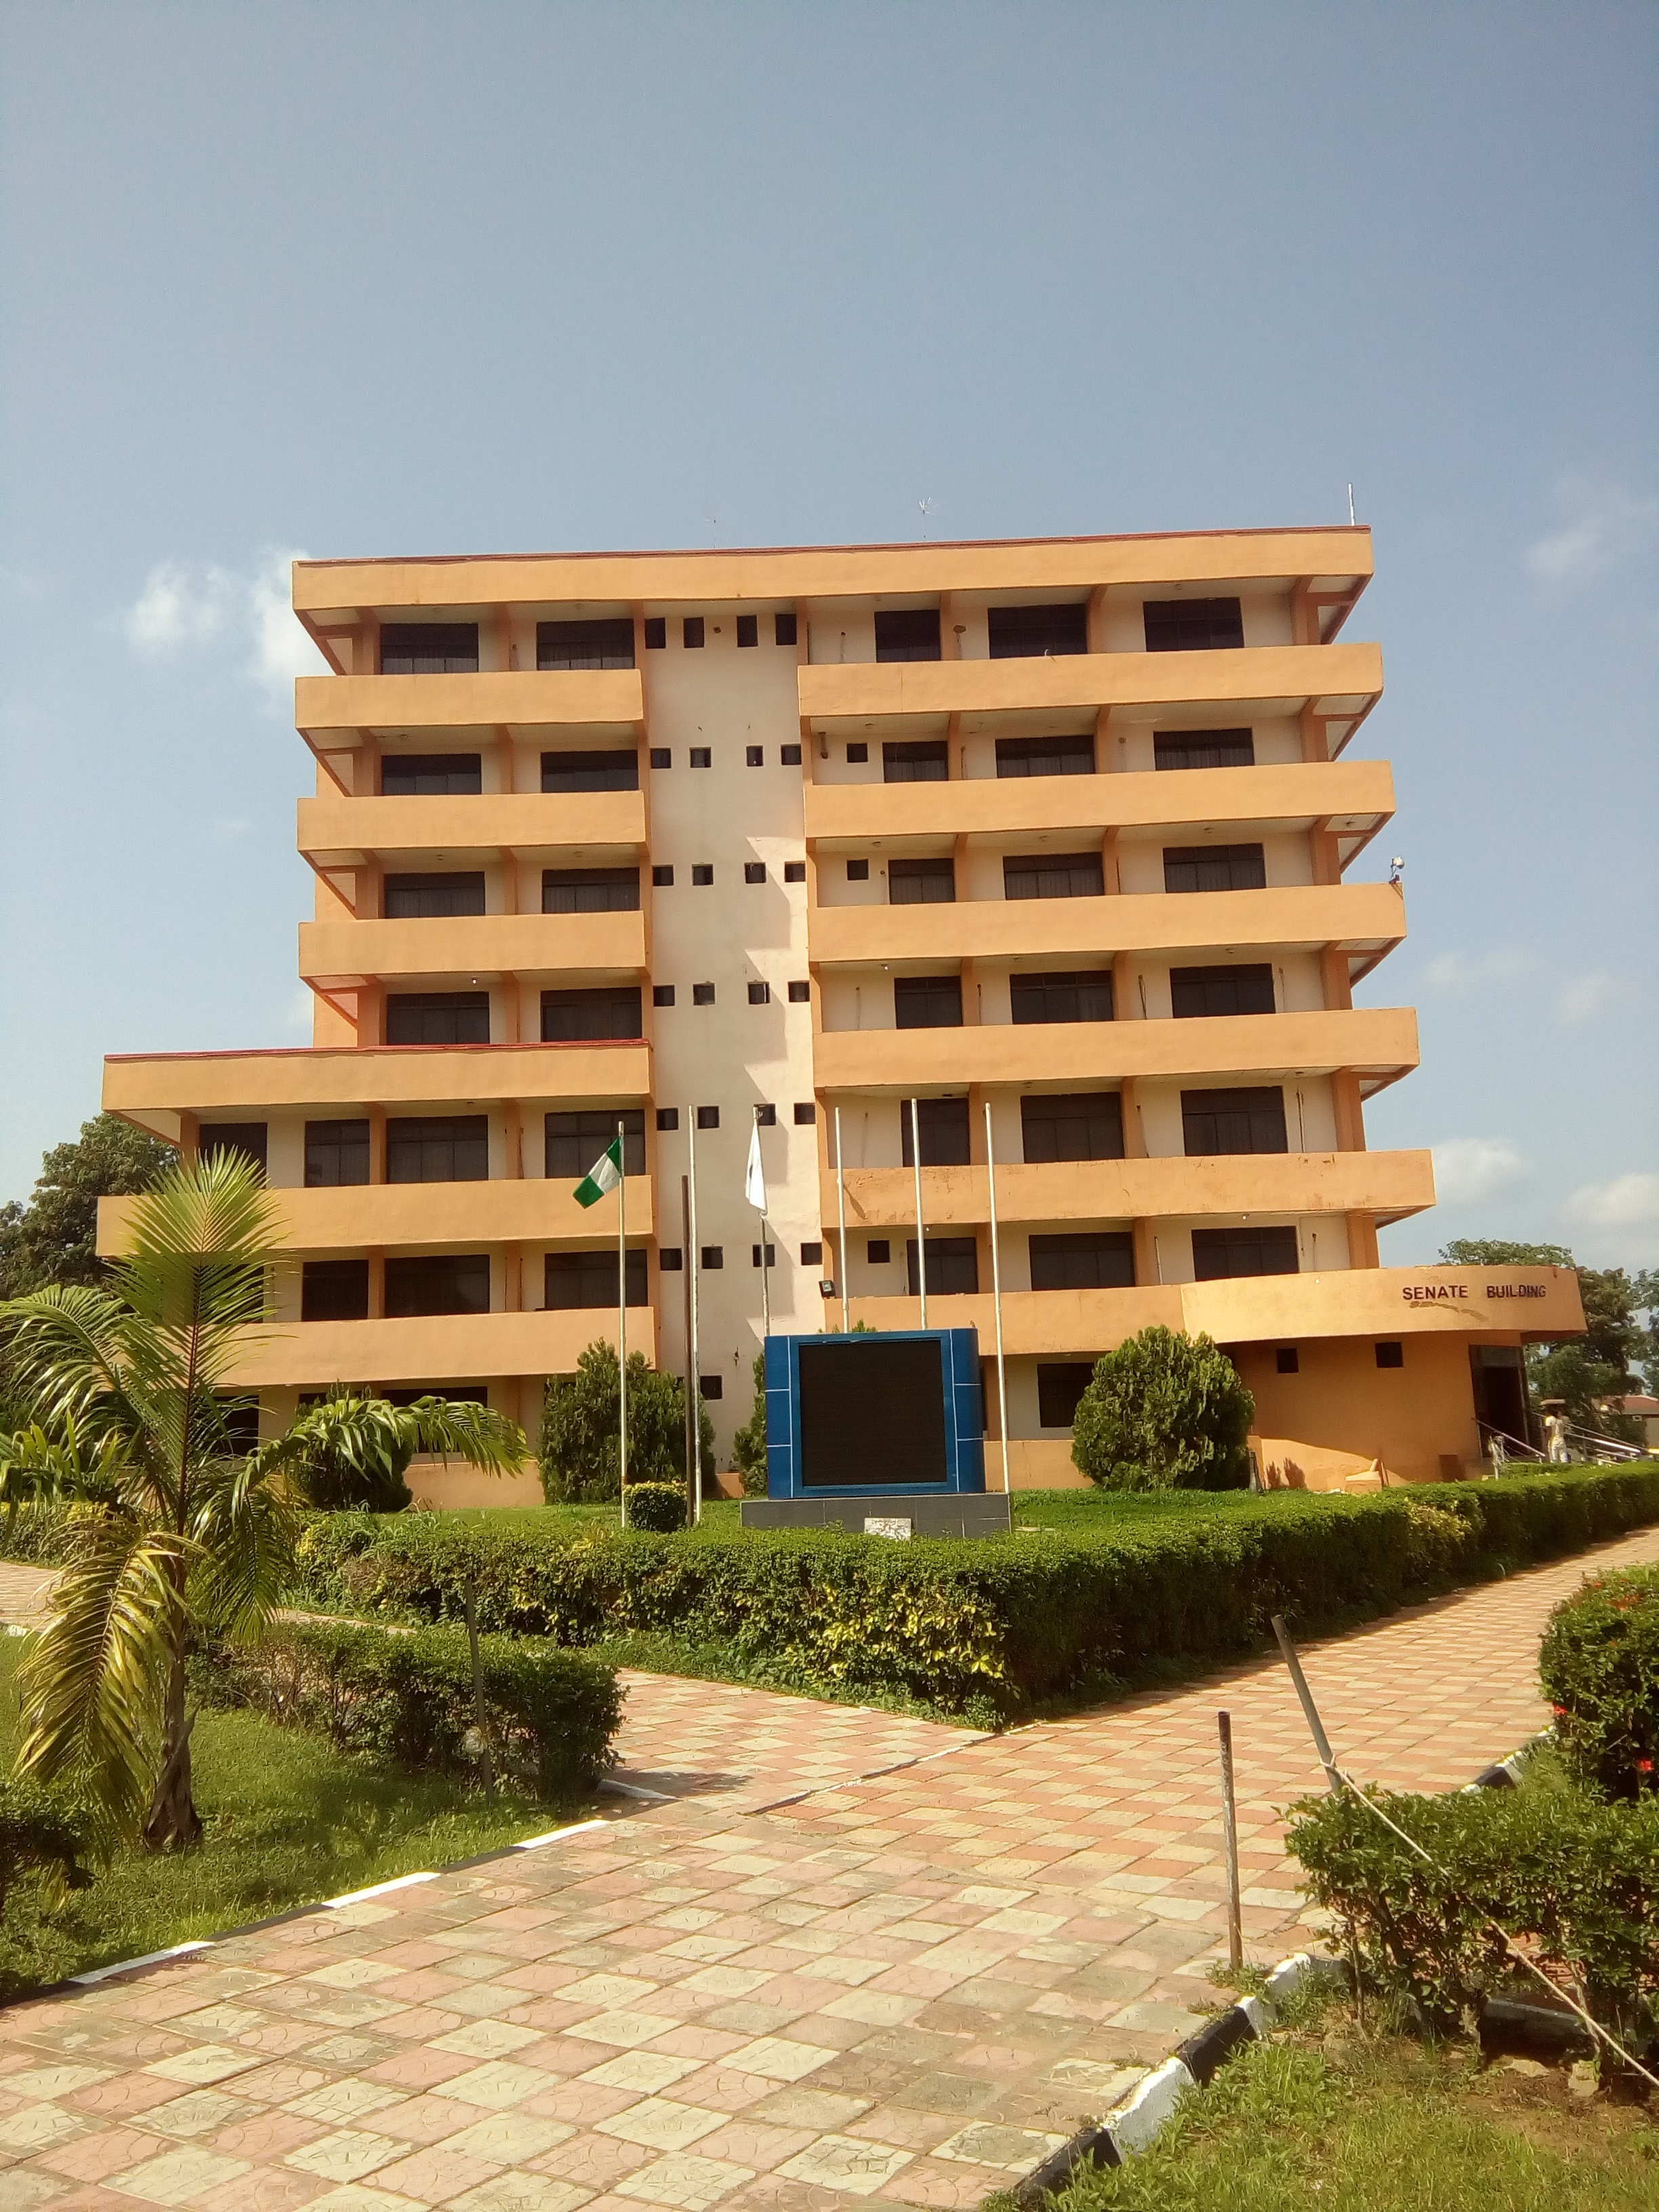 University of Ilorin - Wikipedia